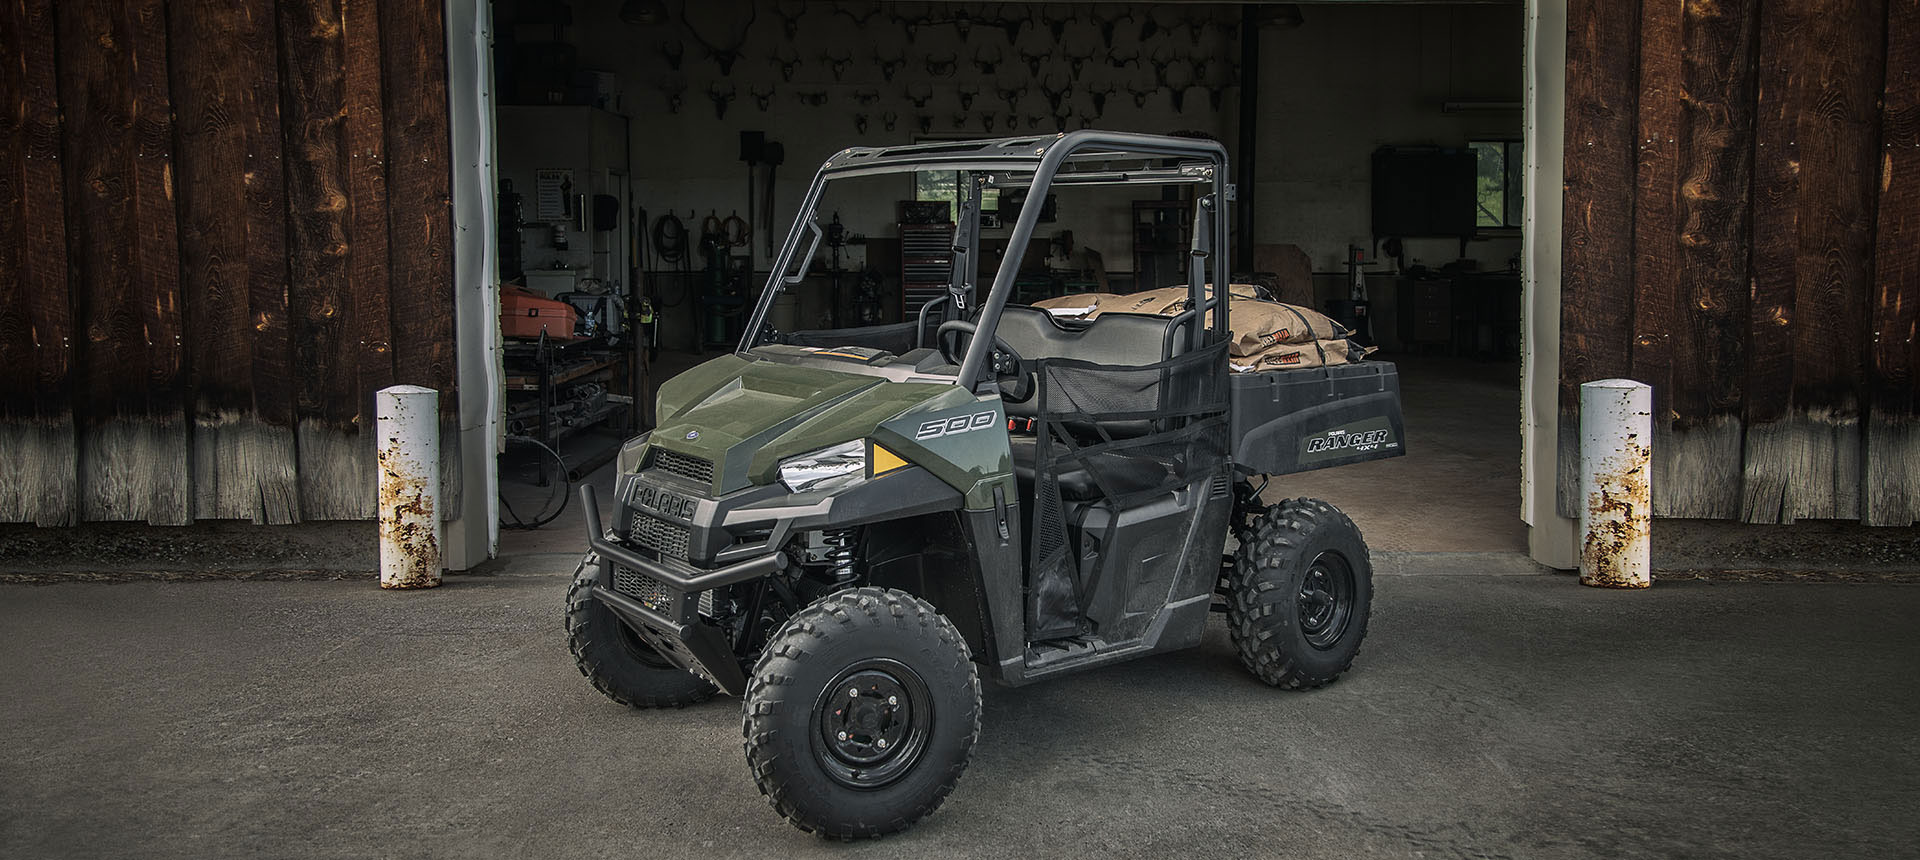 2019 polaris ranger 500 utv polaris ranger 02 Polaris Ranger Parts Diagram ranger 500